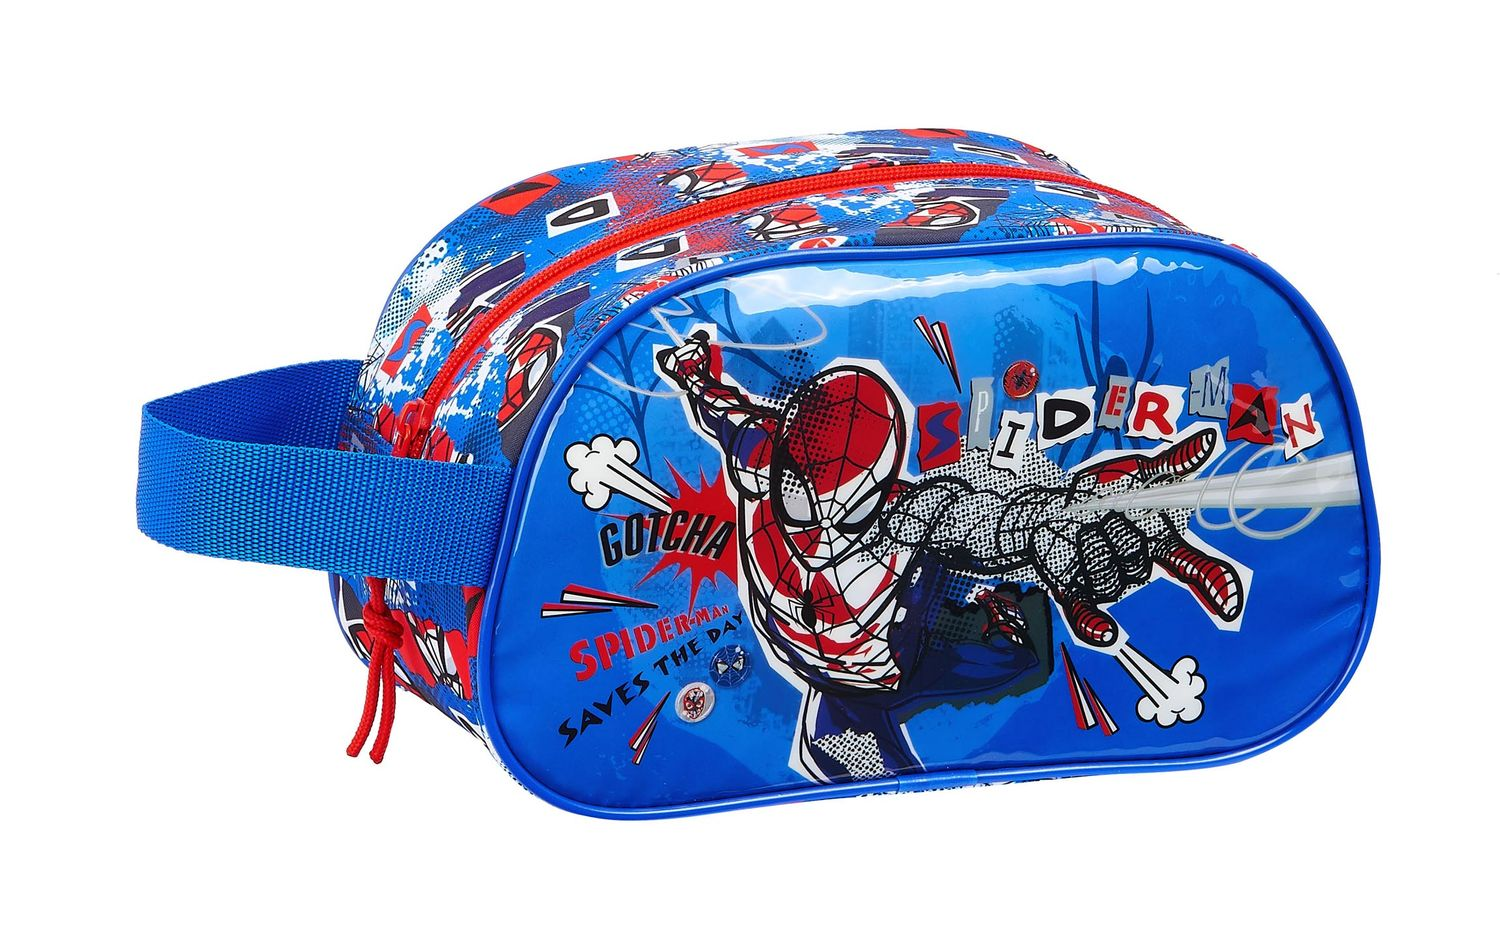 SPIDERMAN PERSPECTIVE Toiletry Travel Bag – image 1